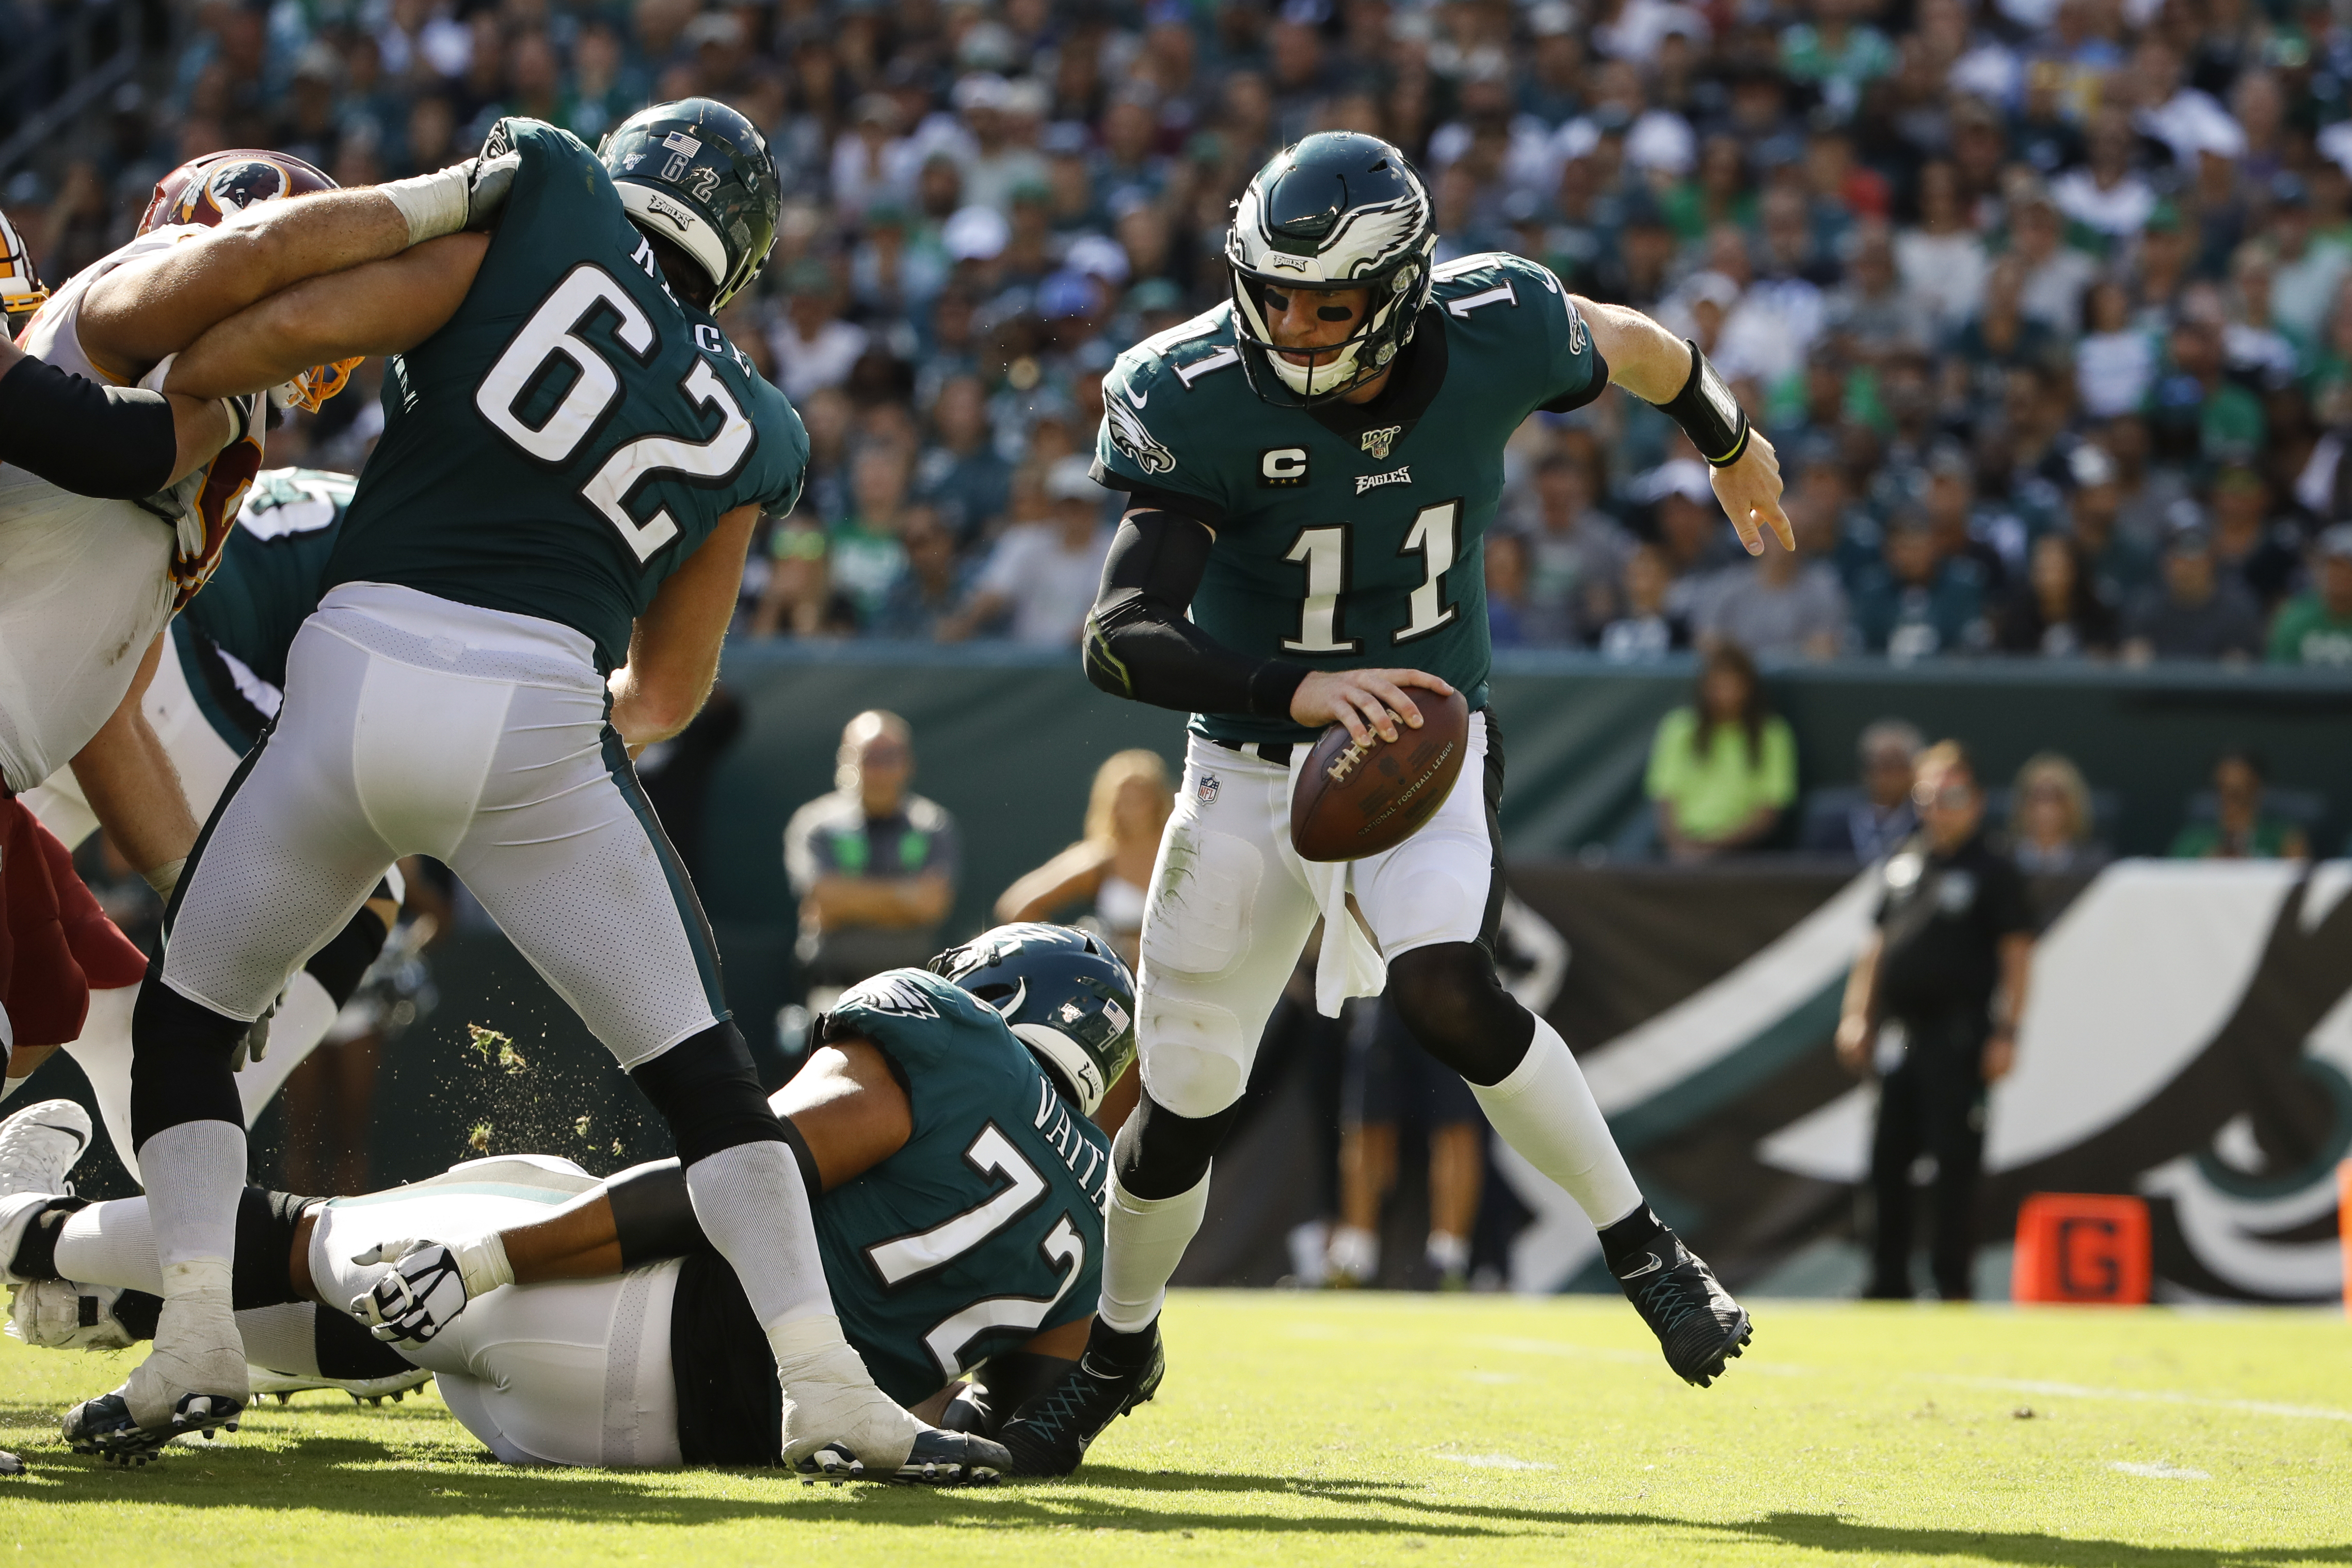 NFL playoff picture: Eagles defeat Redskins, Cowboys beat Rams (UPDATE) | Here's what it means for NFC East race